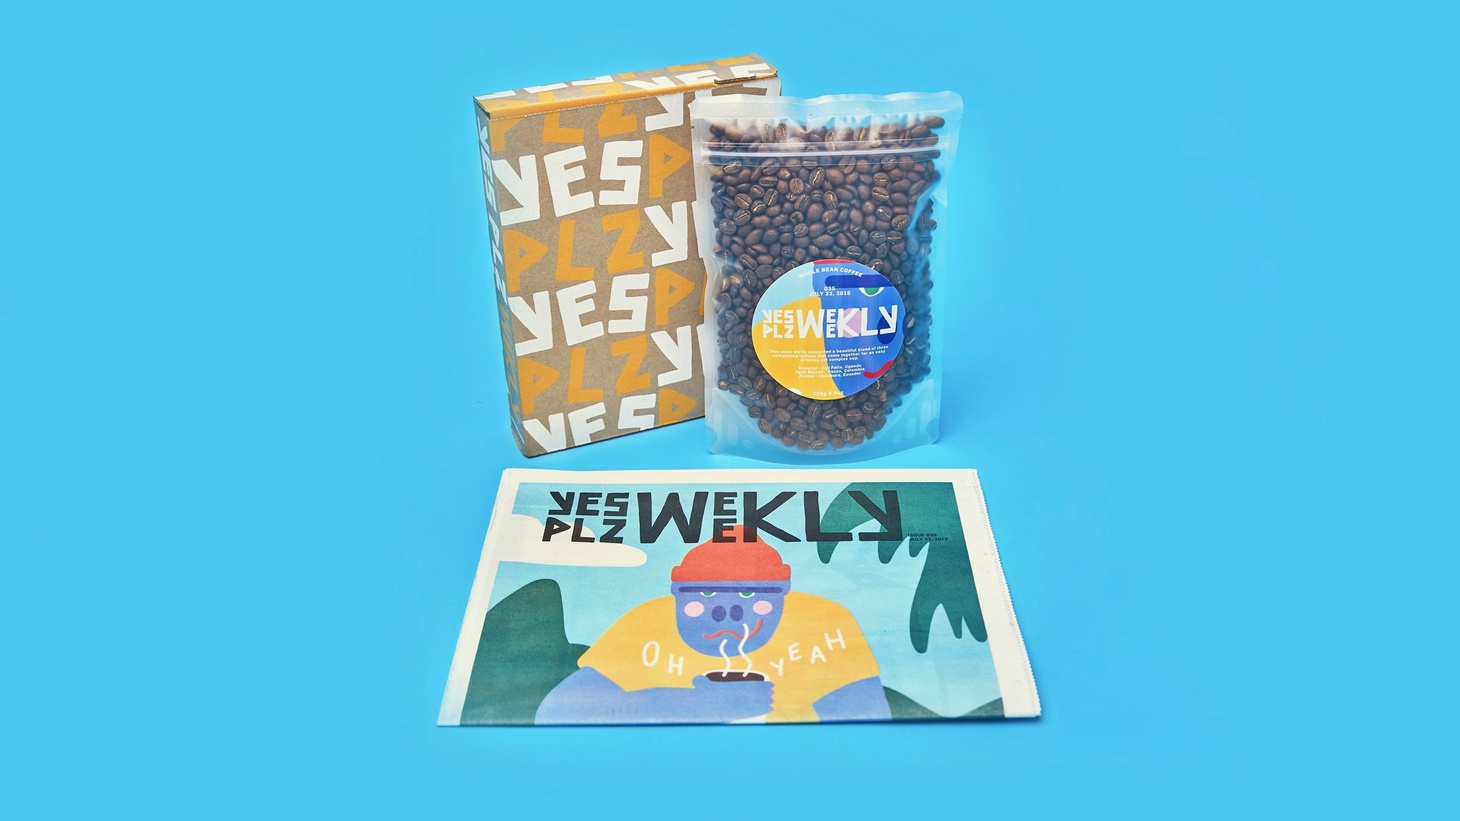 Yes Plz is a new weekly delivery service that includes an eclectic magazine with a pack of freshly roasted coffee.